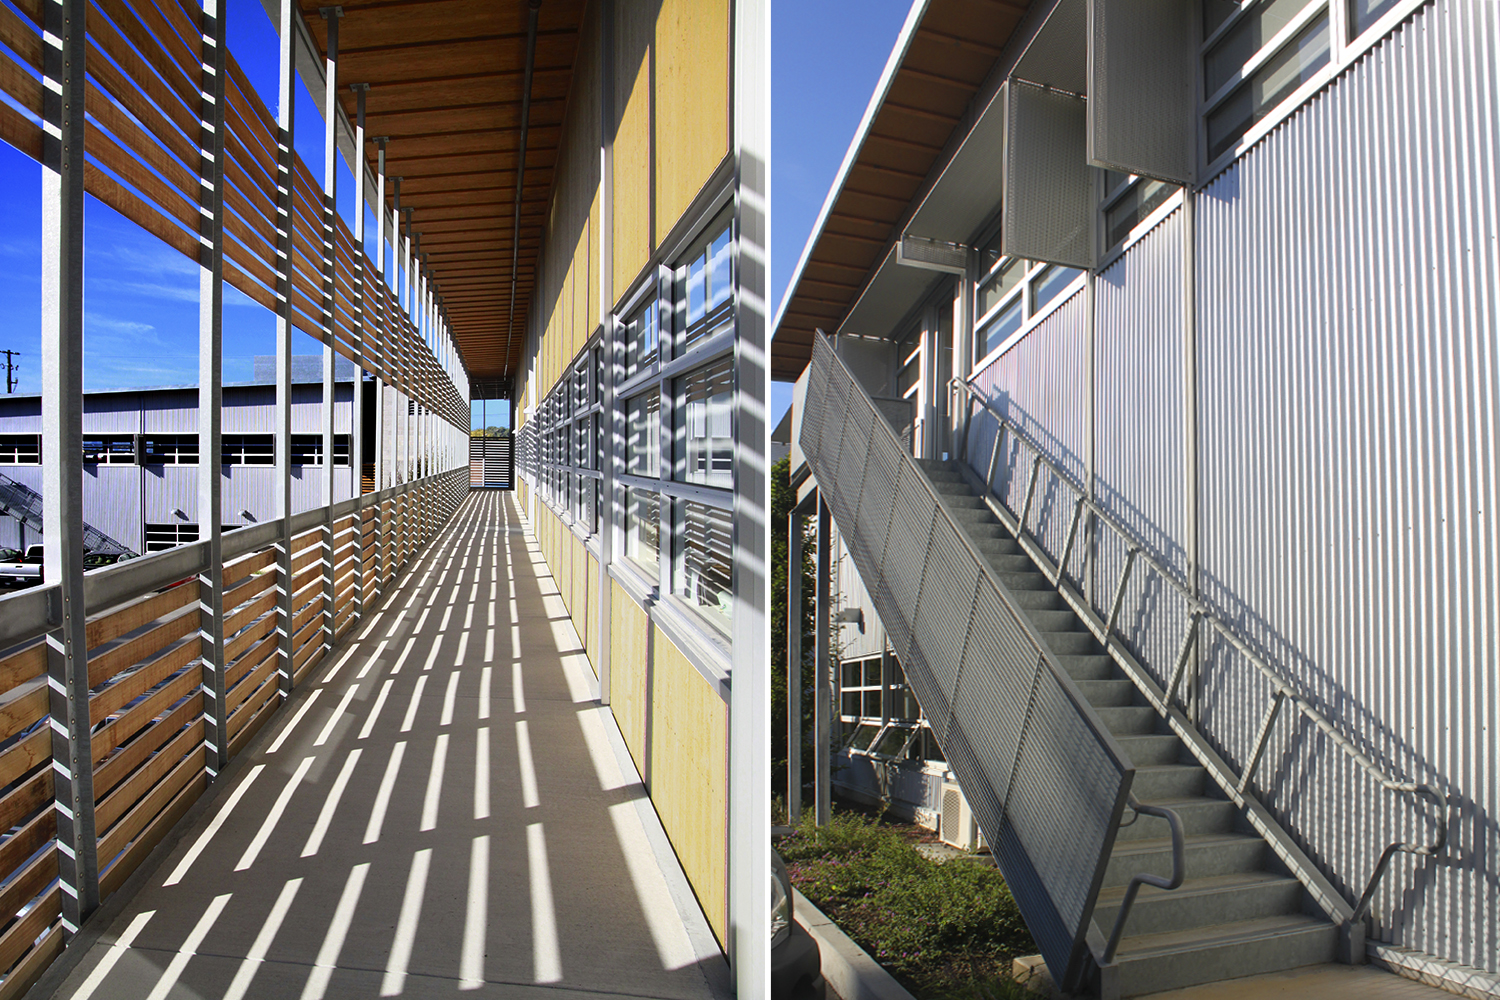 05_Projects_Green Office Building.jpg